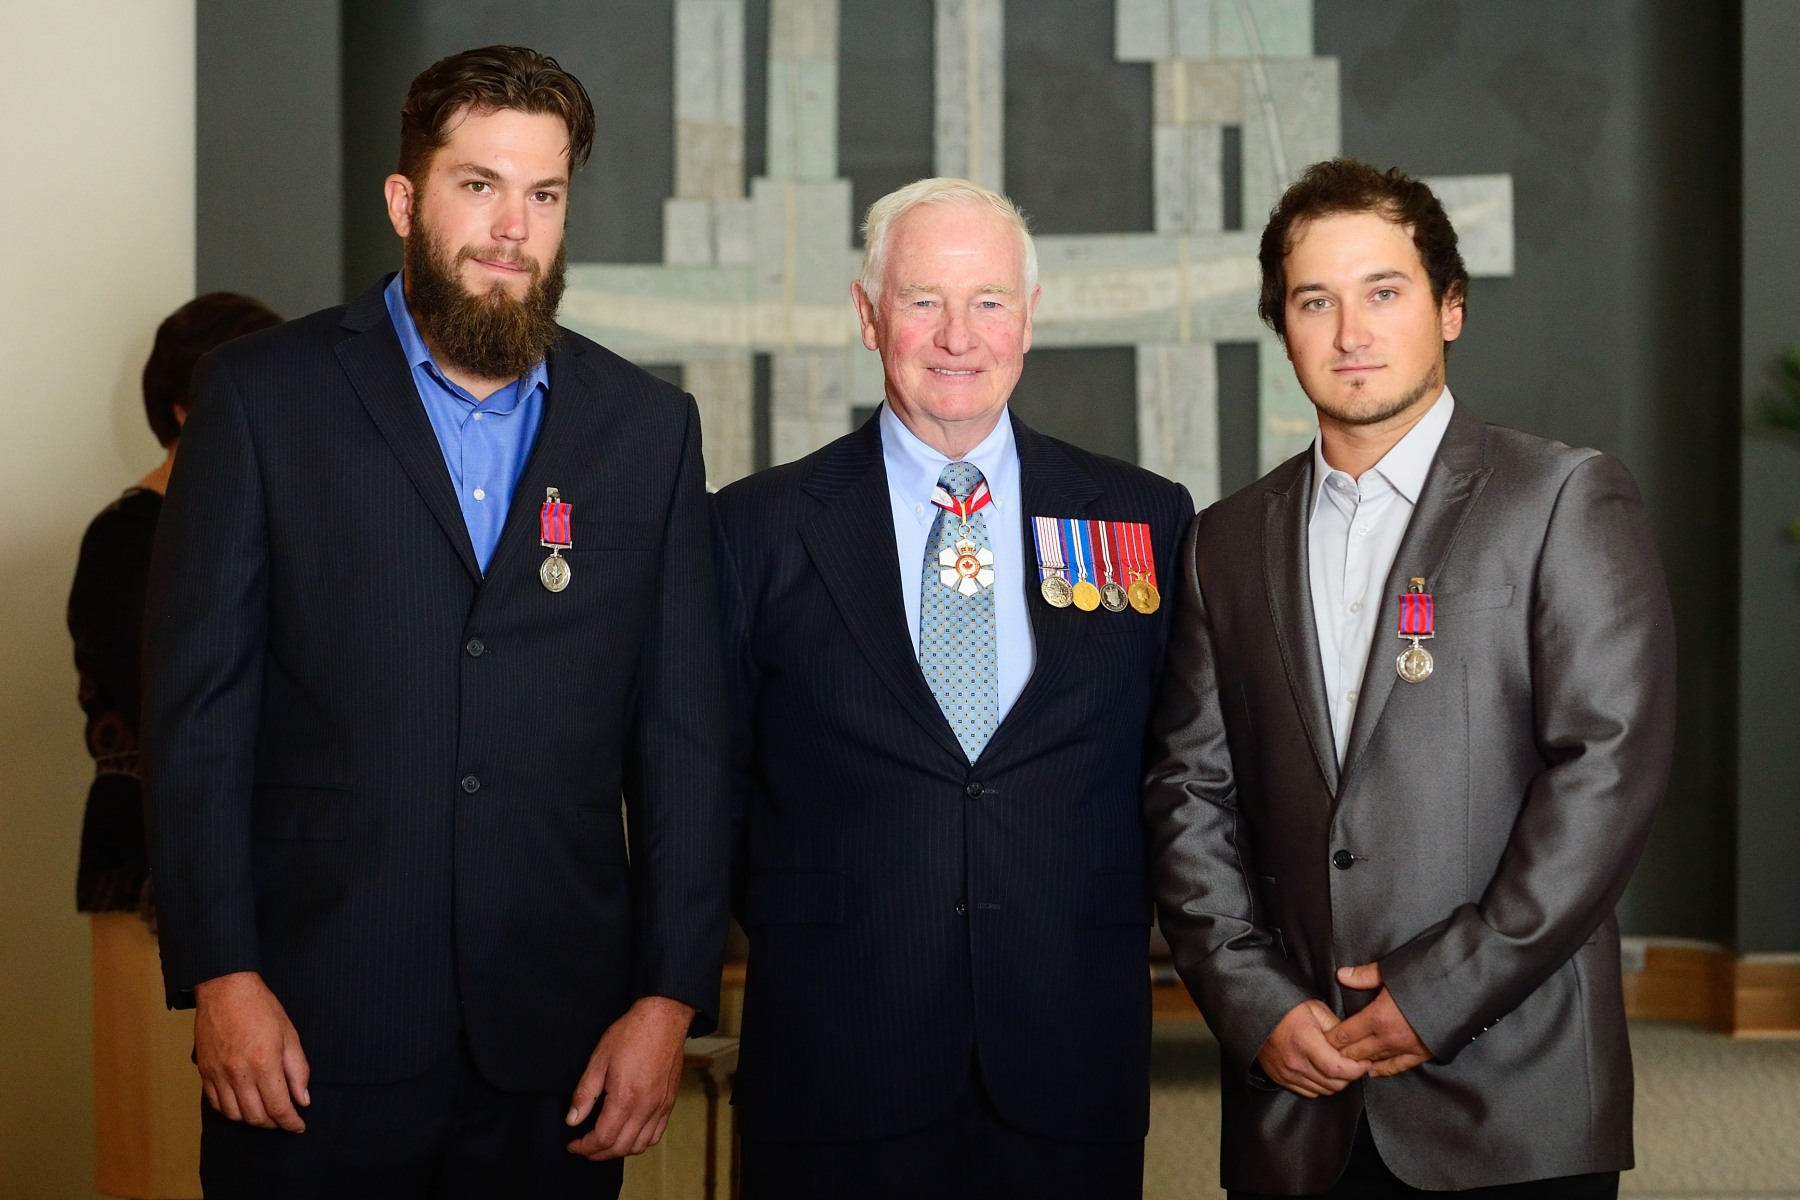 The Governor General presented the Medal of Bravery to Charles-Antoine Desautels, M.B. and Simon Lalonde, M.B. On October 24, 2013, Charles-Antoine Desautels and Simon Lalonde rescued a female co-worker who had fallen from a footbridge into the St. Lawrence River, in Sept-Îles, Quebec. The workers were leaving their construction site when the woman fell four metres into the freezing water. Her safety vest did not deploy and she began to sink under water. Without any thought for their own safety, Messrs. Desautels and Lalonde jumped from the footbridge, pulled the victim to the surface, and towed her back to the dock where others were able to help them get out of the water.